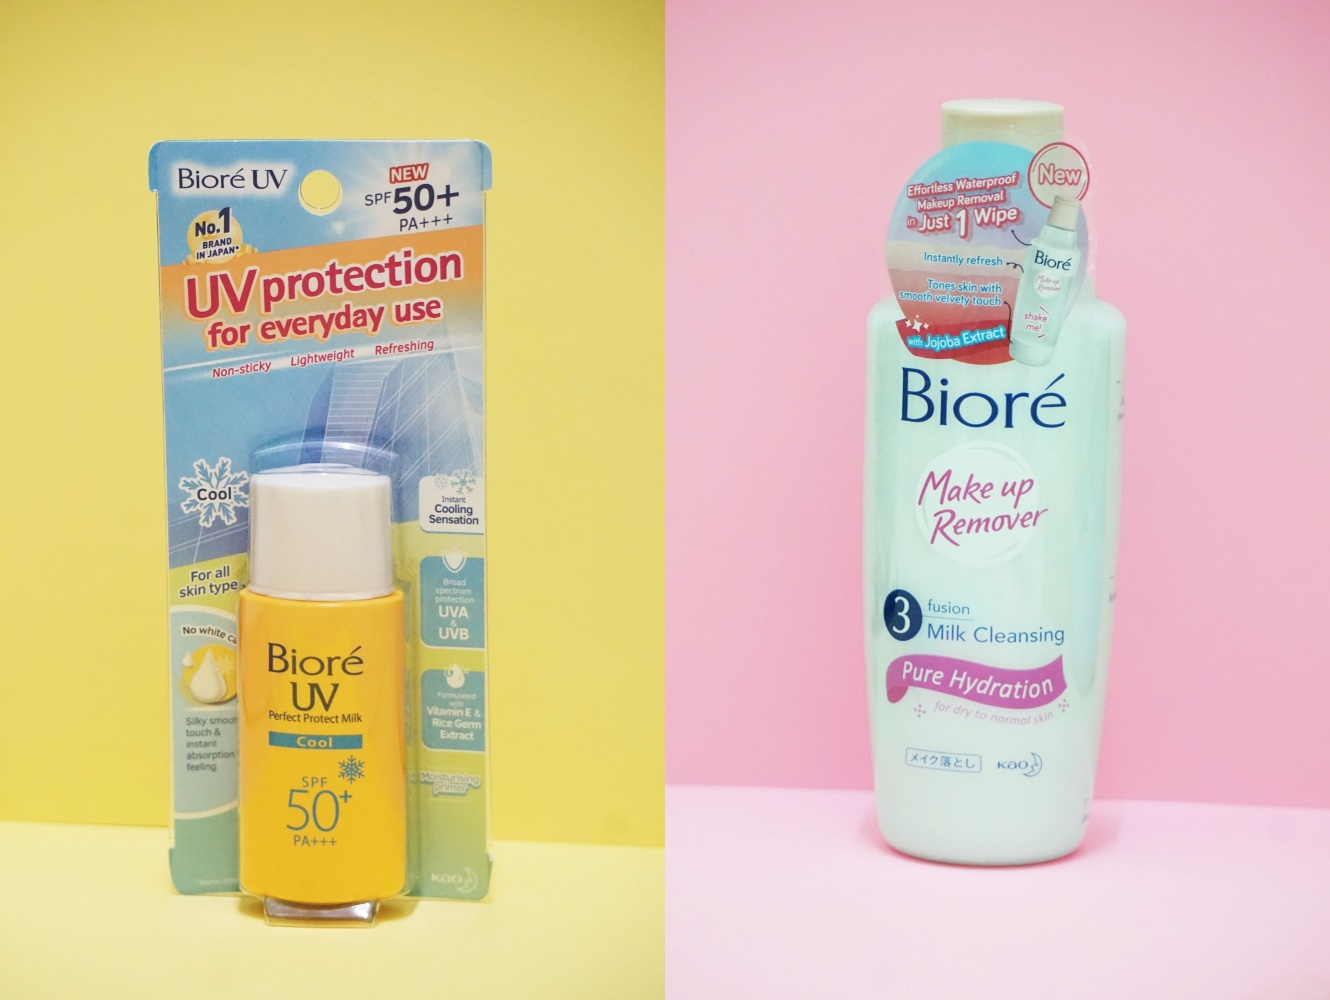 REVIEW | Biore 3 Fusion Milk Cleansing Make Up Remover & Biore UV Perfect Protect Milk Cool